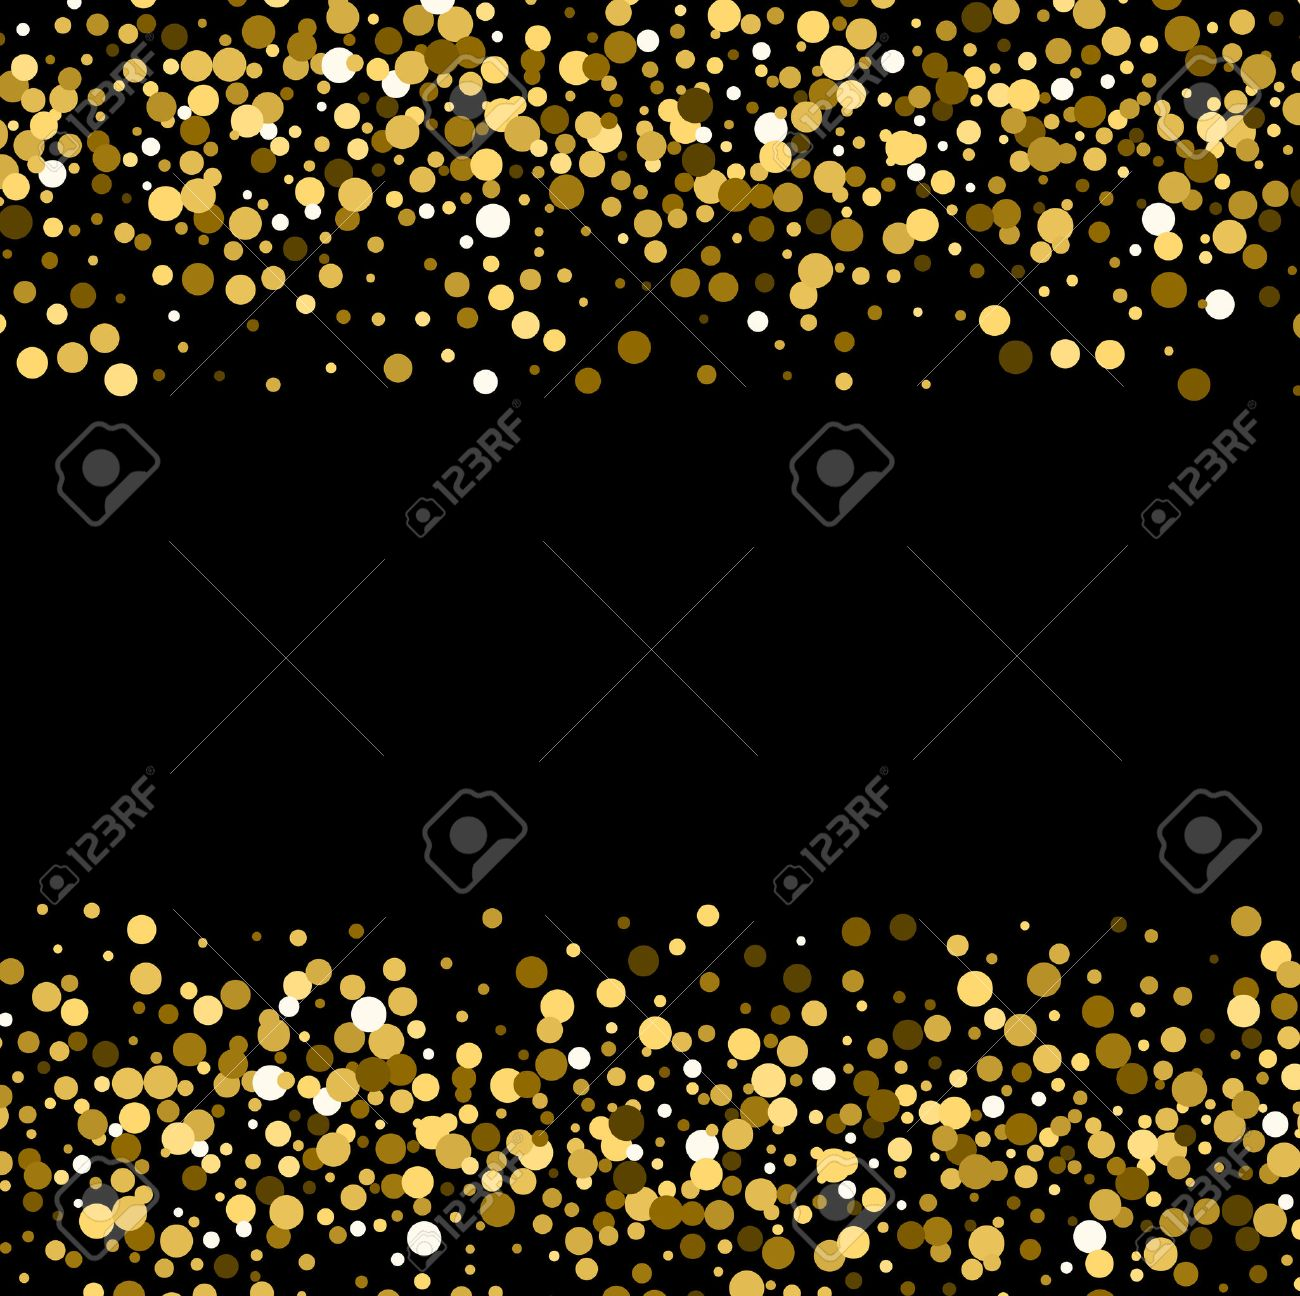 Gold Sparkles On Black Background. Gold Glitter Background. Royalty Free  Cliparts, Vectors, And Stock Illustration. Image 51564131.